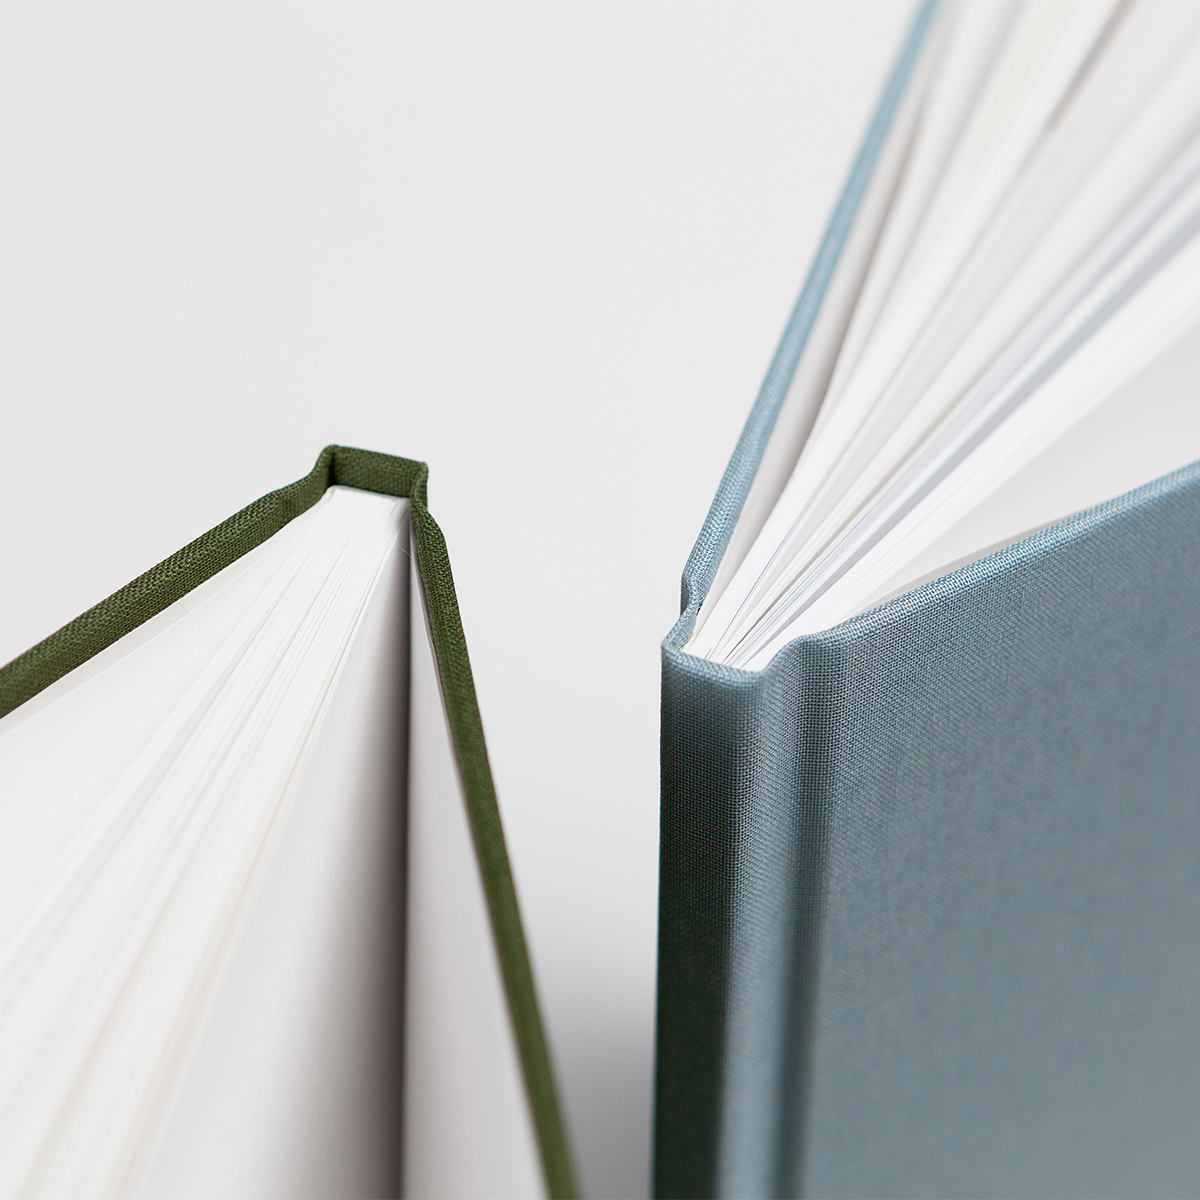 Close up image of hardcover photo book binding